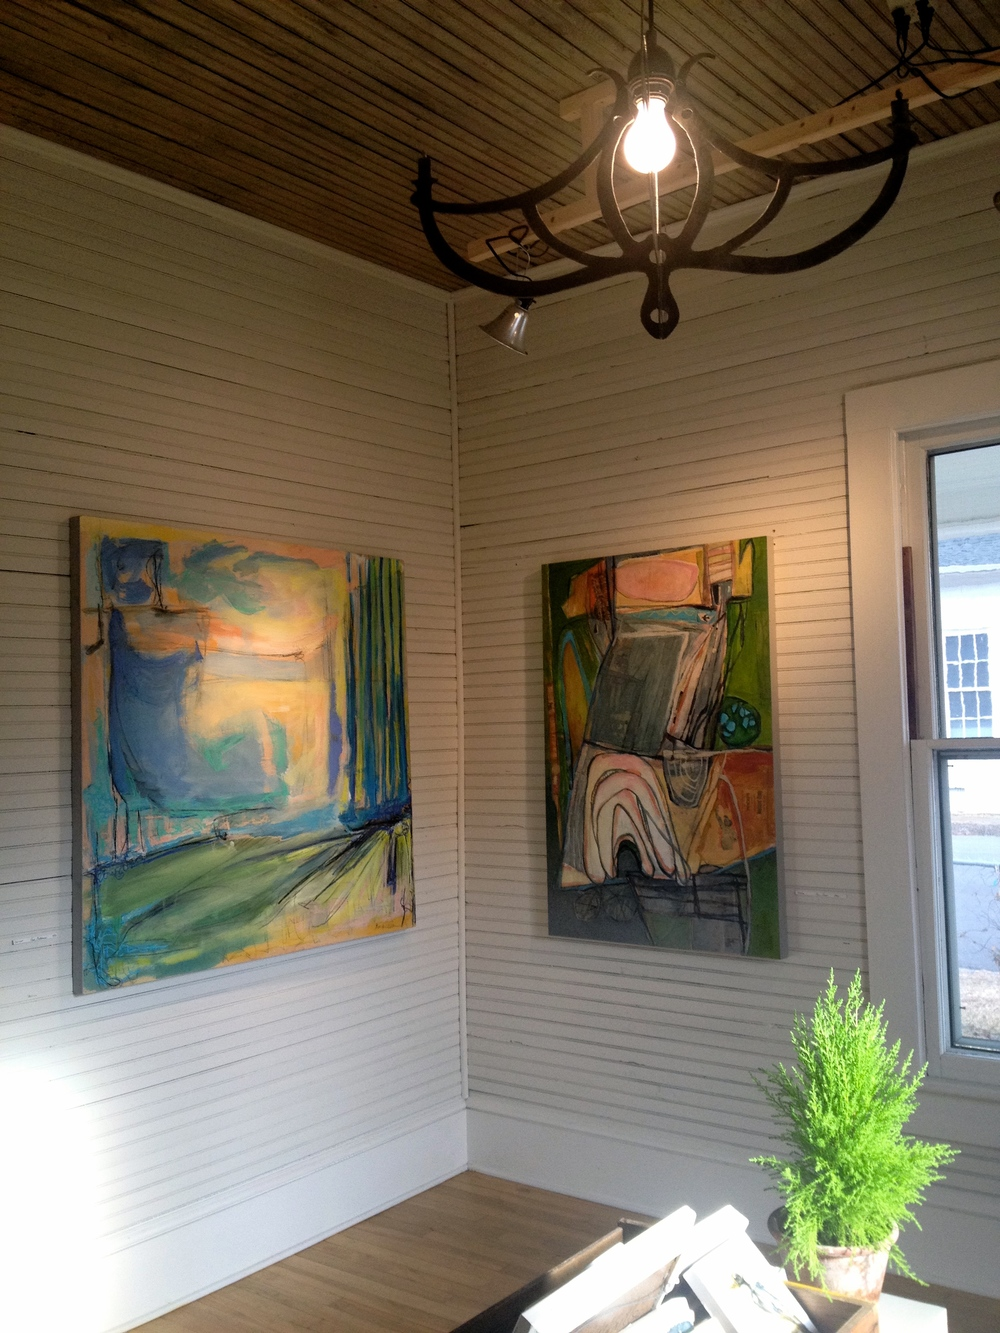 finished- 4x4 mixed media(left)is now hanging in Art&Light Gallery next to my Studio mate, Kevin Isgett's piece (right).